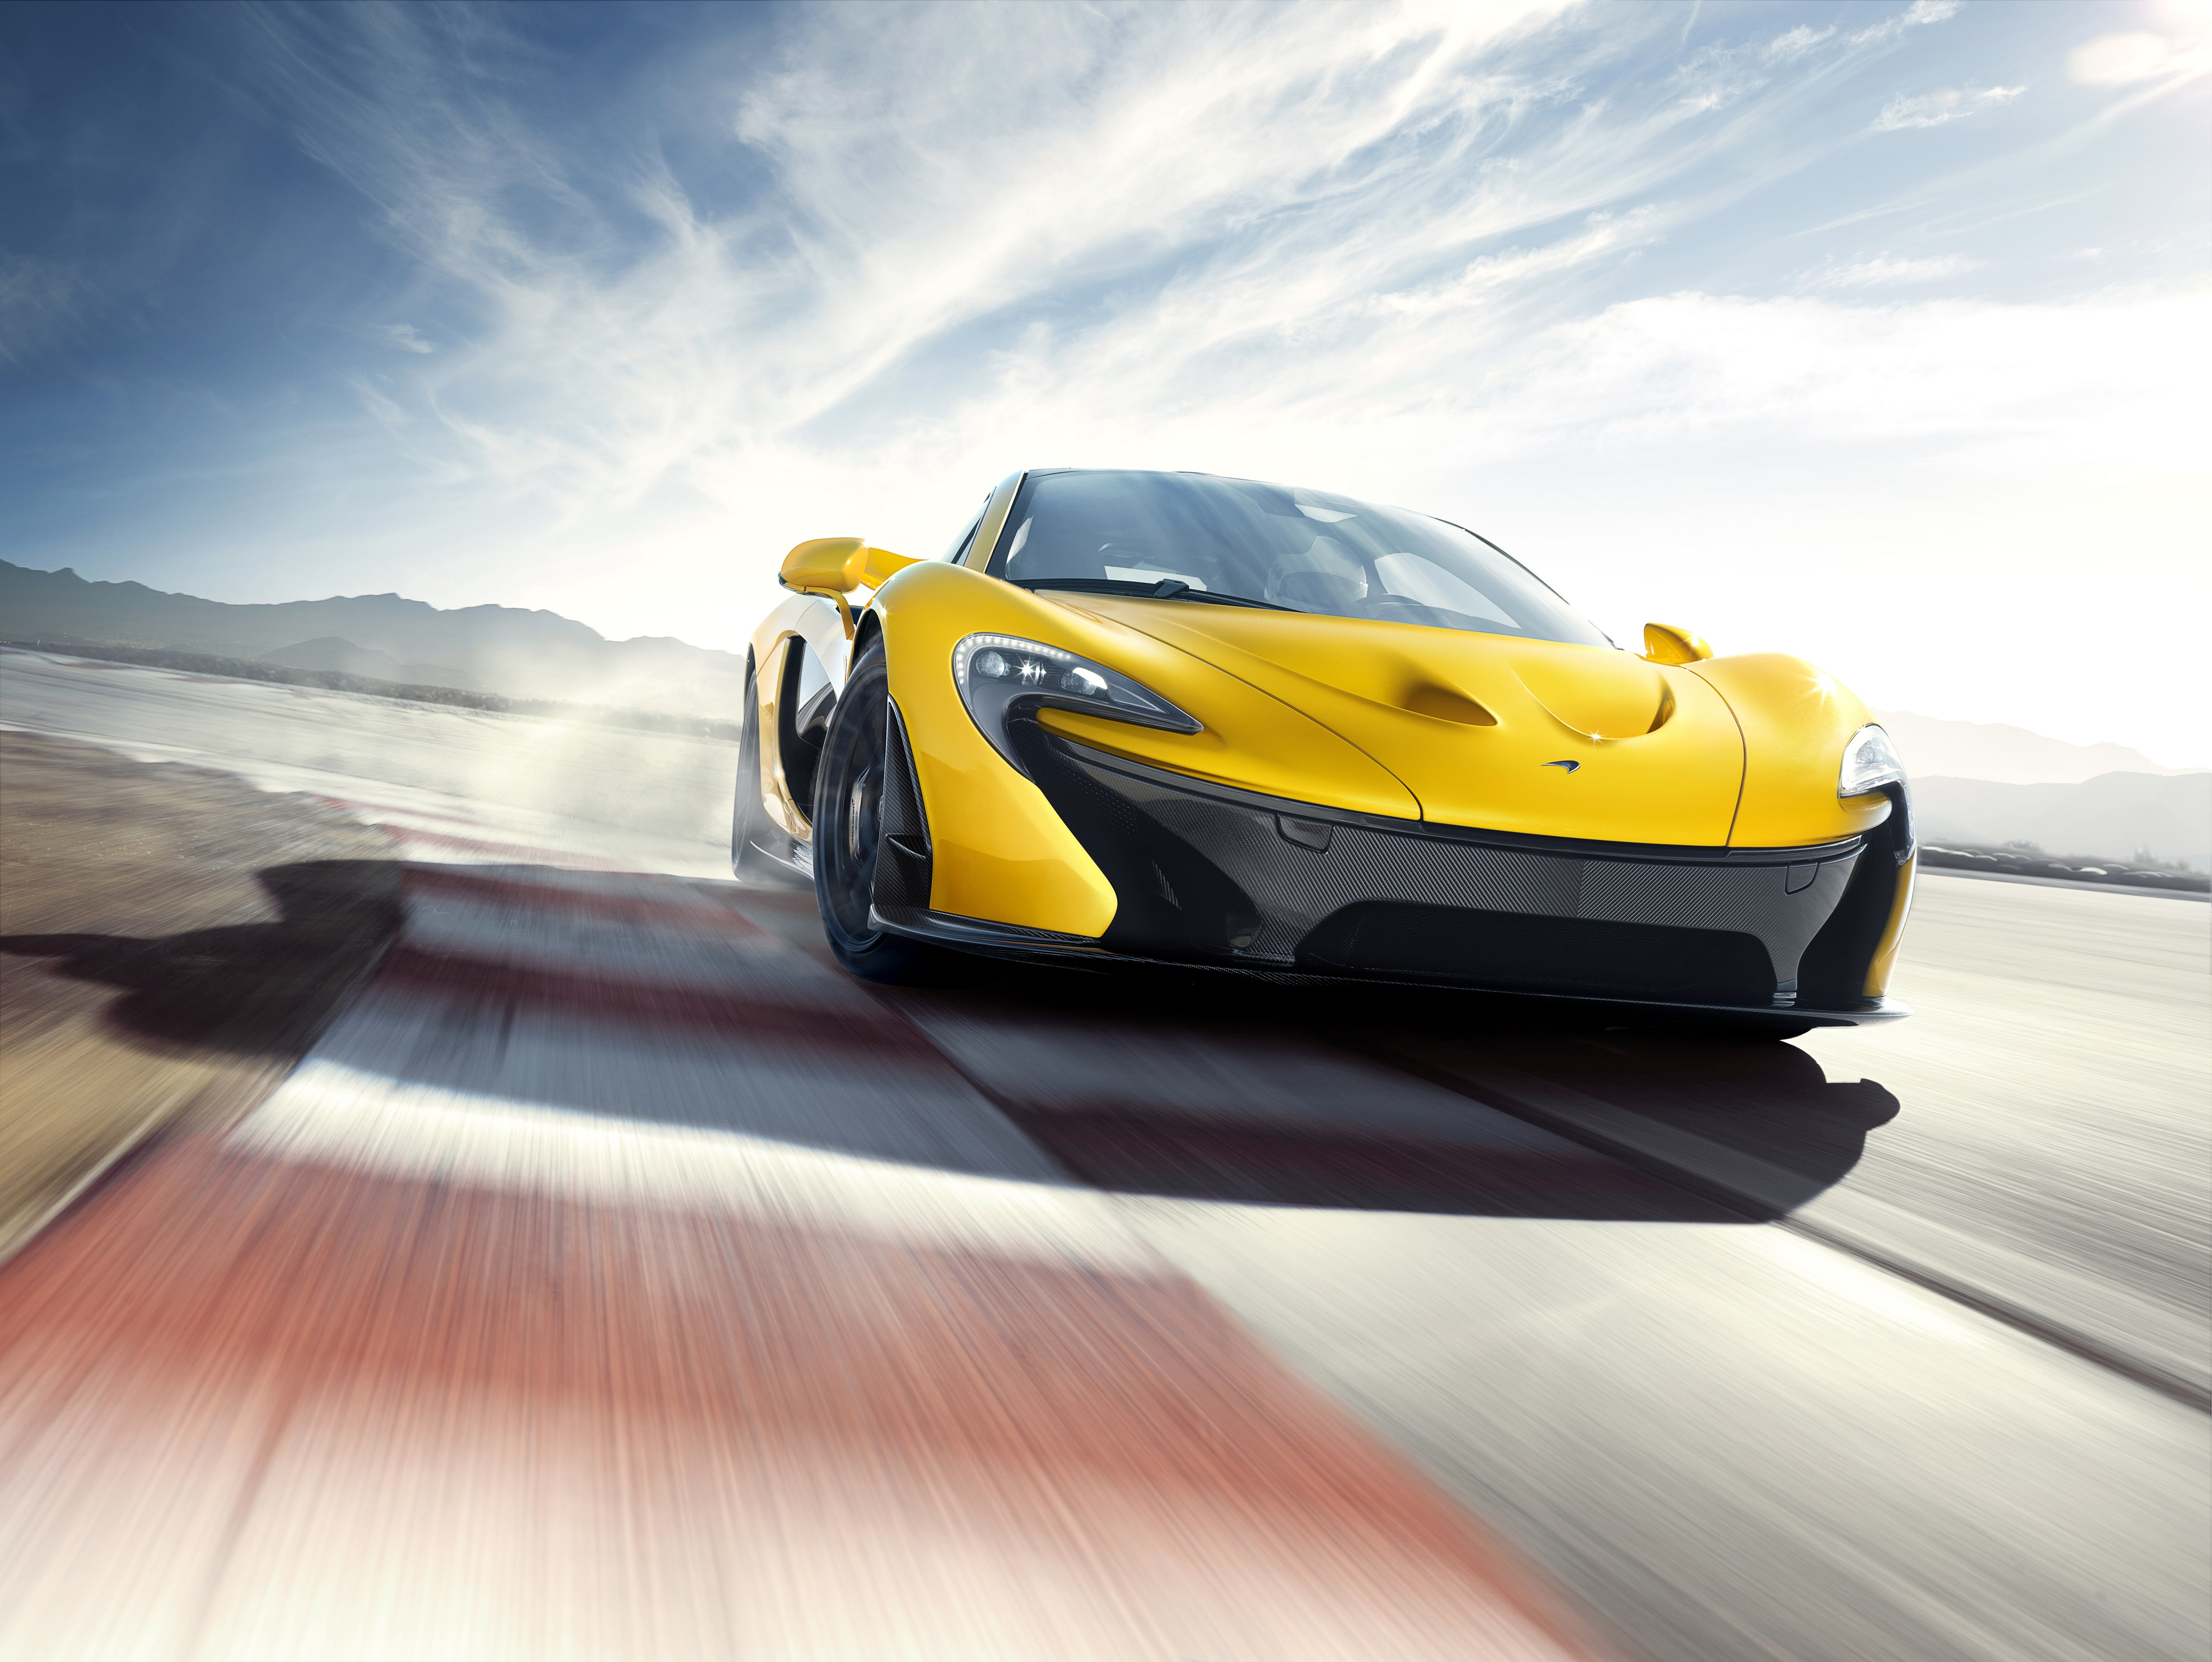 mclaren profitable in 2013, first time in its history - biznews